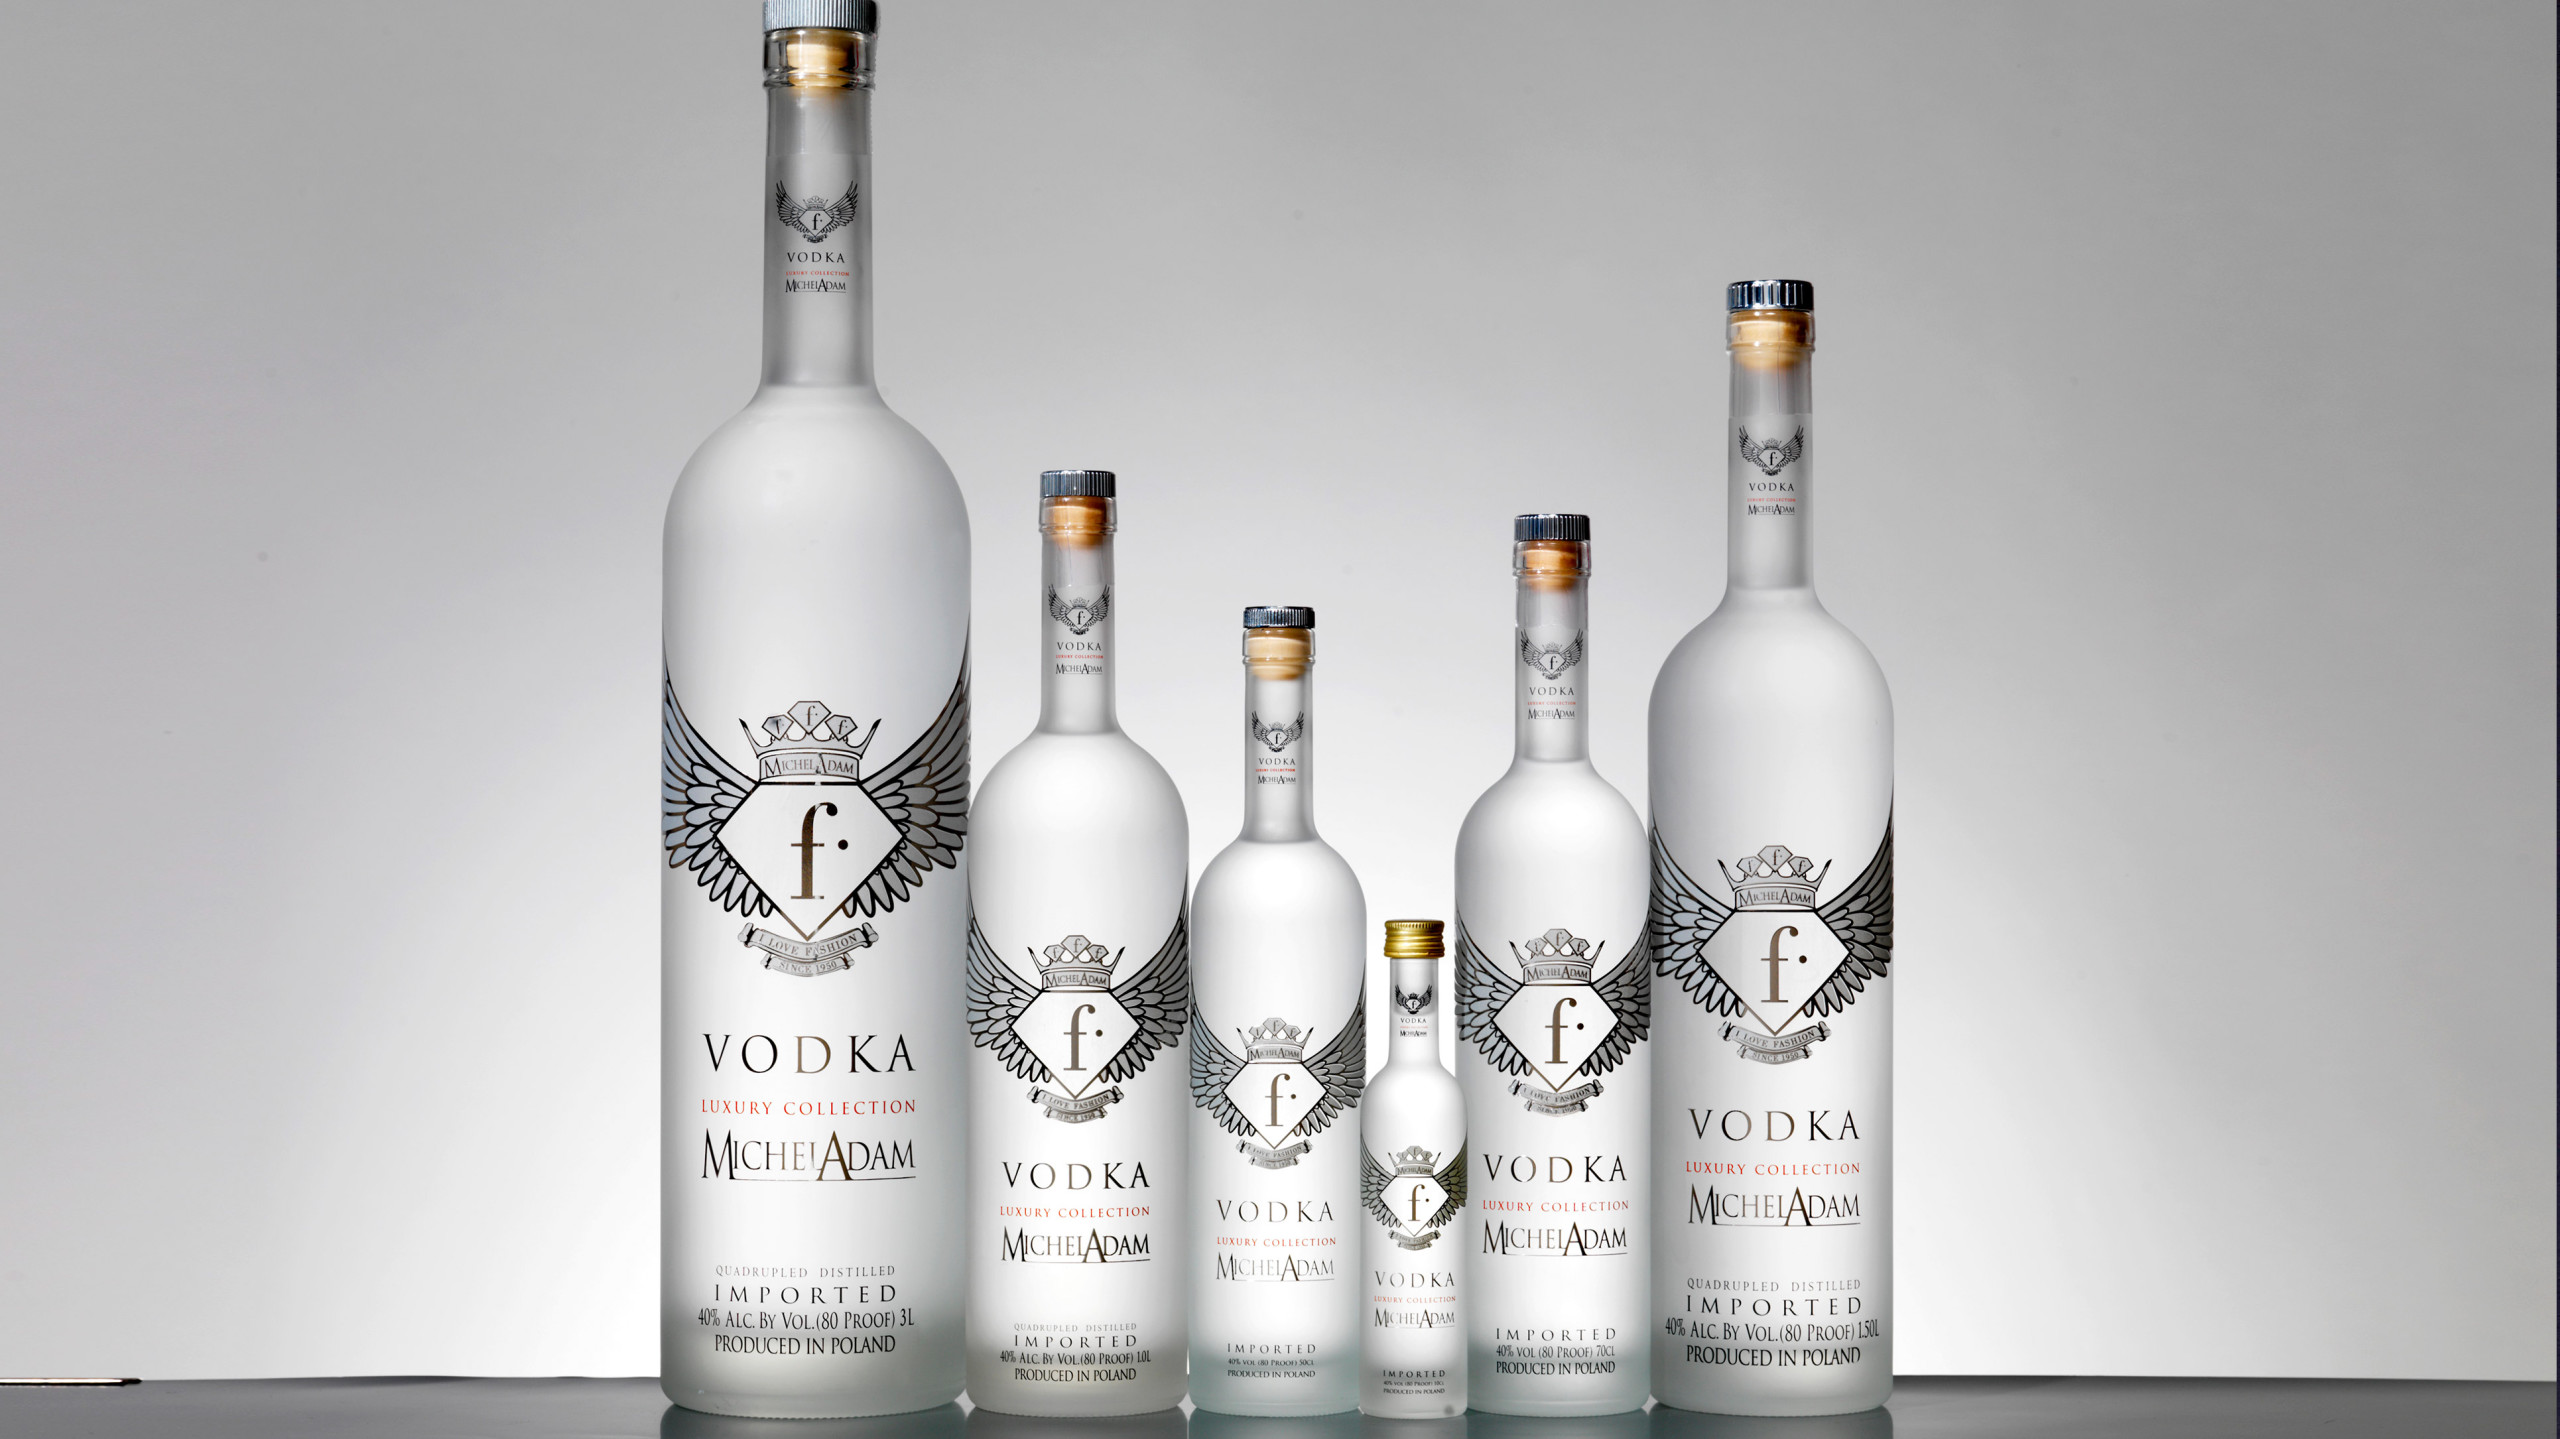 f-vodka-lux-03-2560x1439.jpg